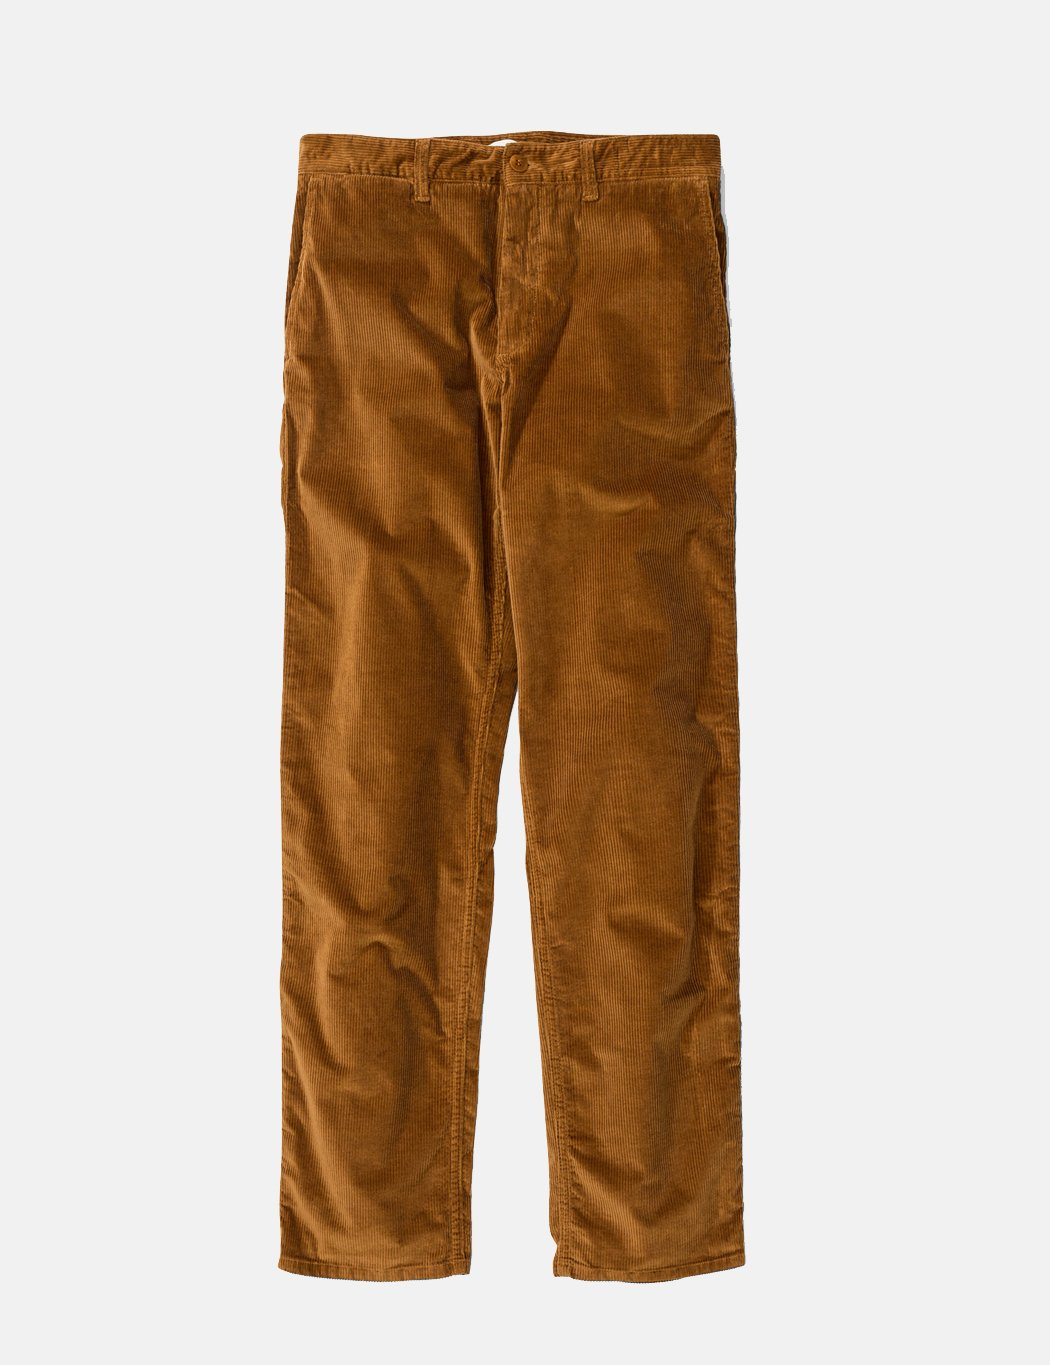 Norse Projects Aros Hosen (Corduroy) - Russet Brown